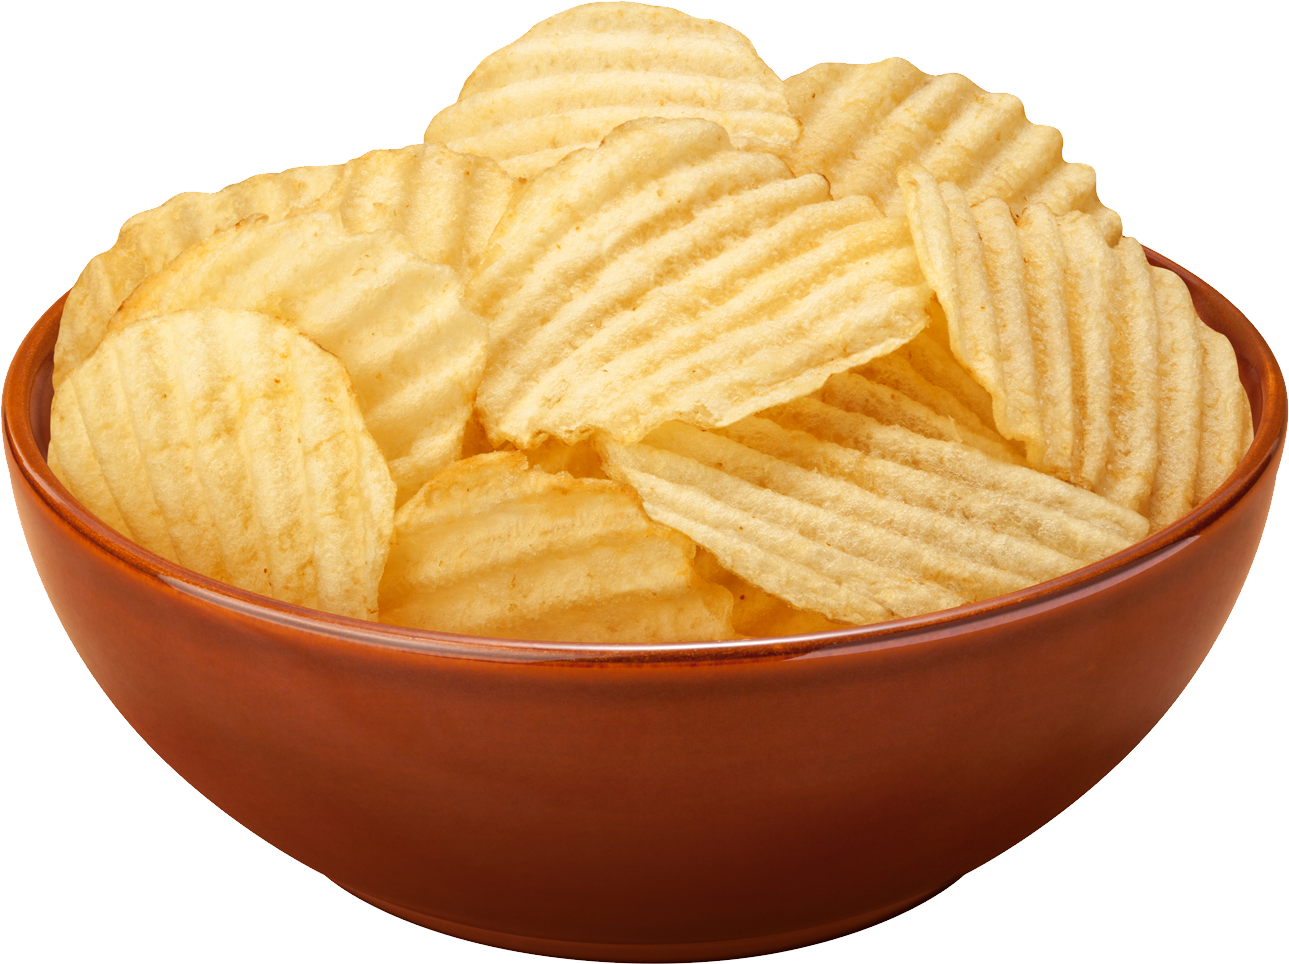 Bowl of chips png. Potato images free download